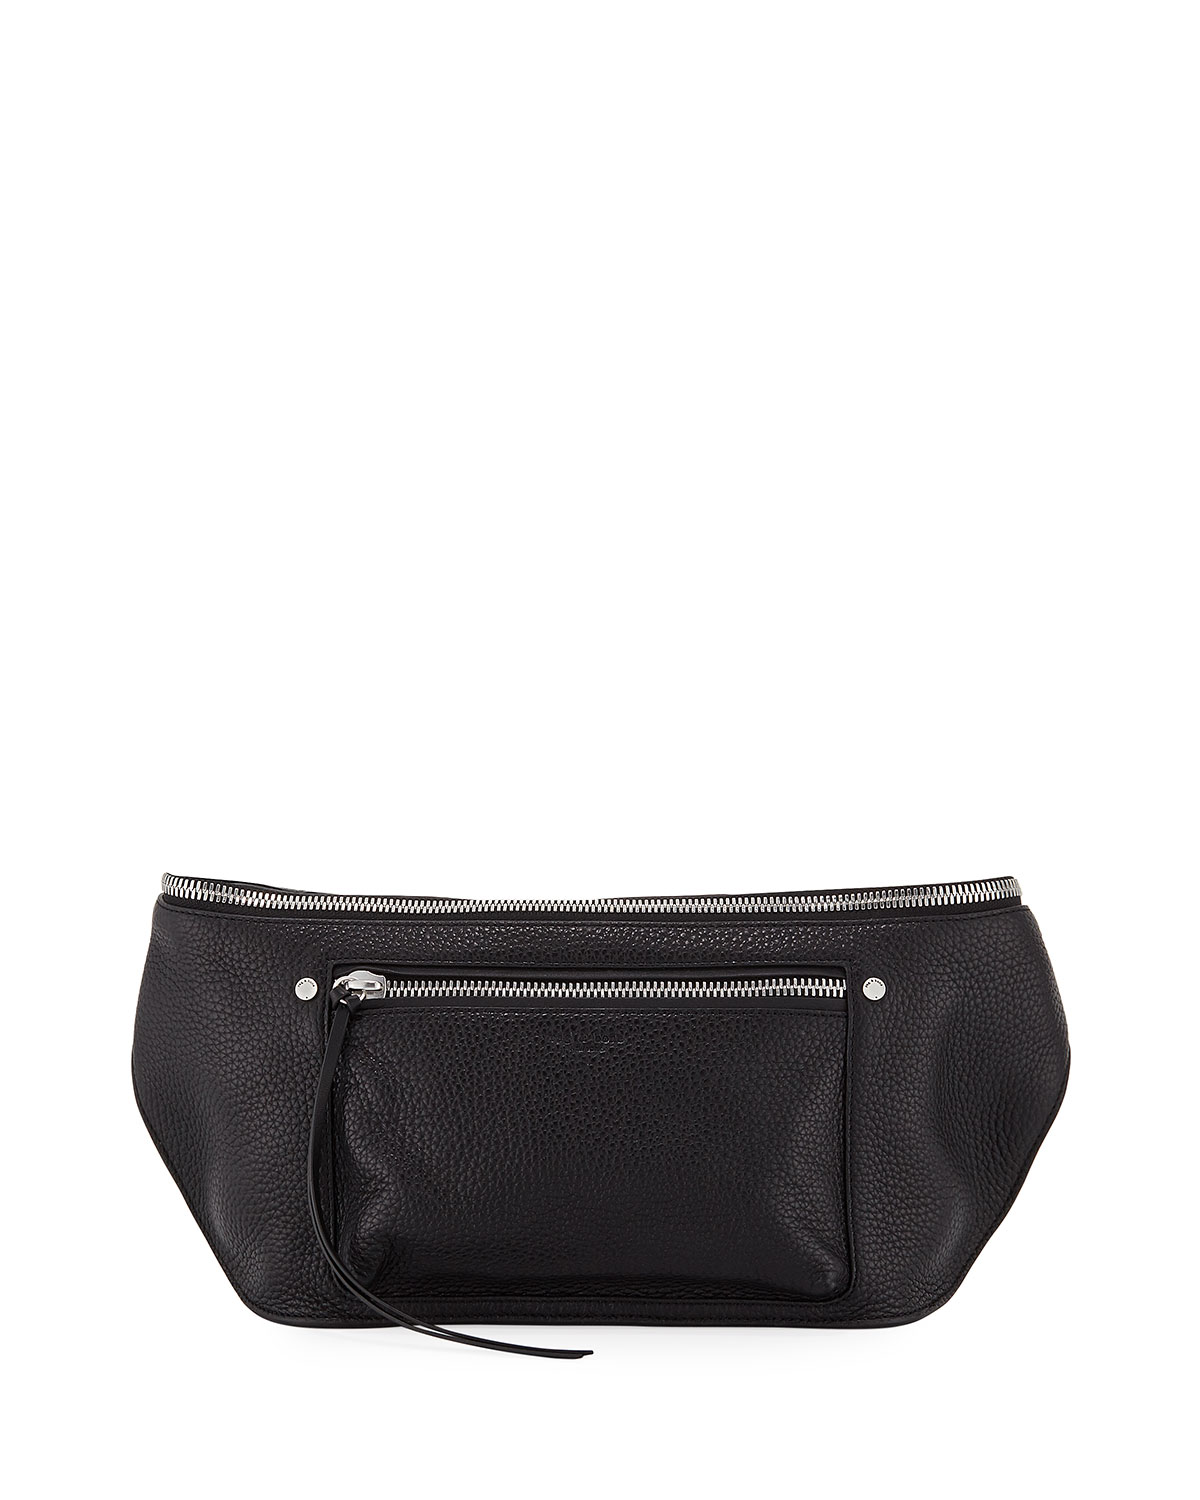 Elliot Large Leather Fanny Pack